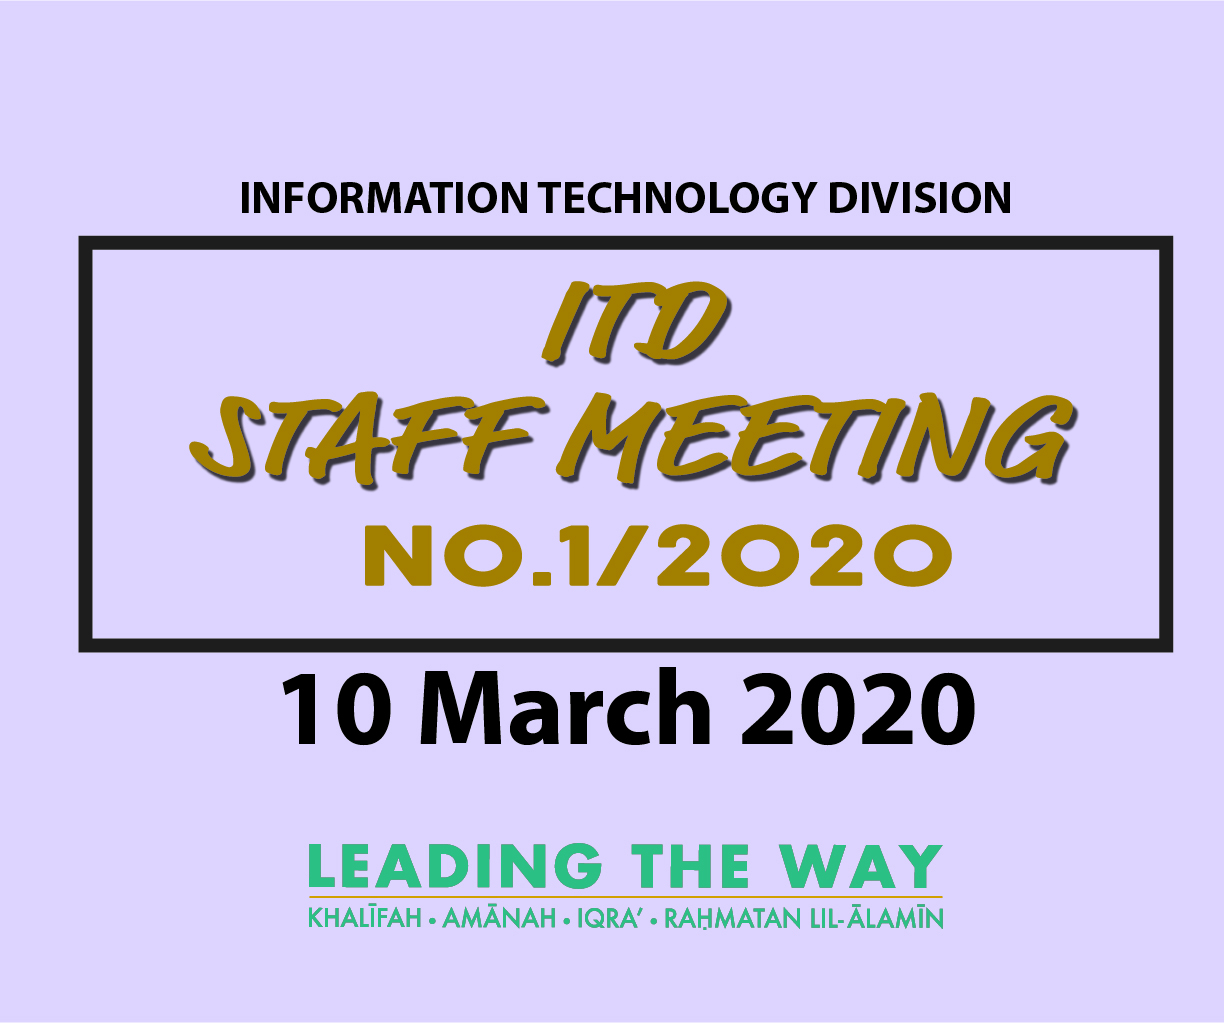 ITD Staff Meeting No.1/2020